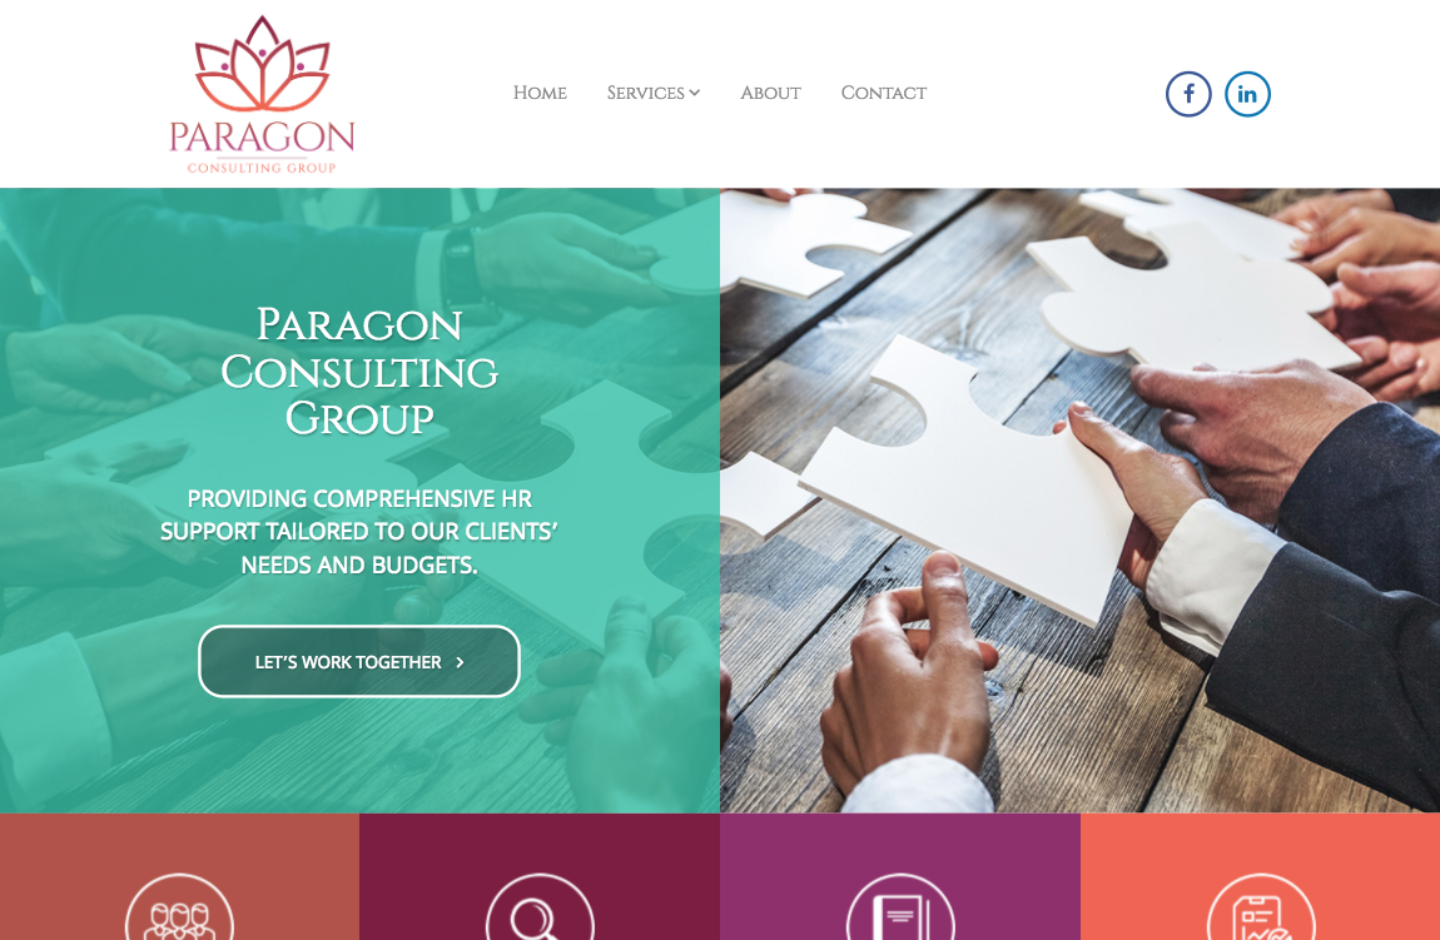 Paragon Consulting Group